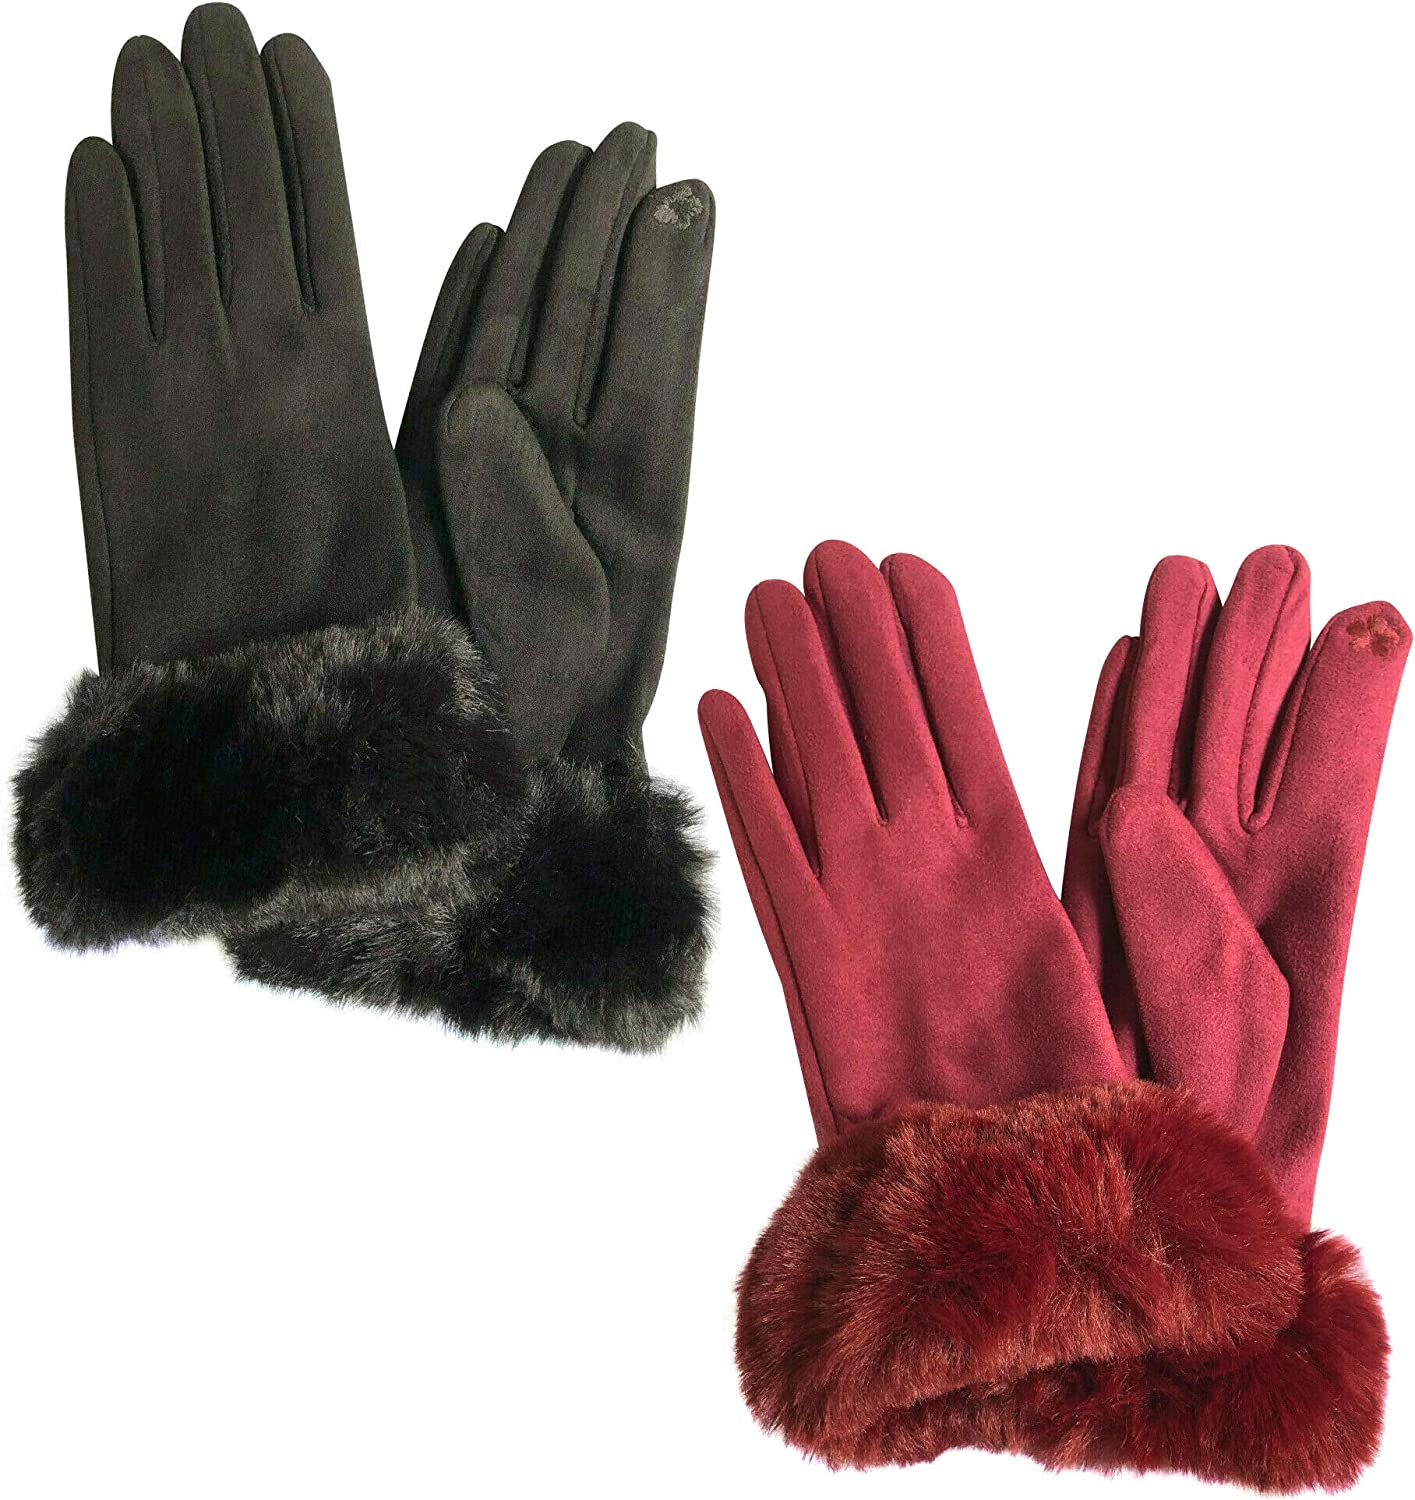 2 Pairs Women Touchscreen Soft Suede fashion Gloves Fleece Lined Windproof Fluffy Fur Winter Gloves